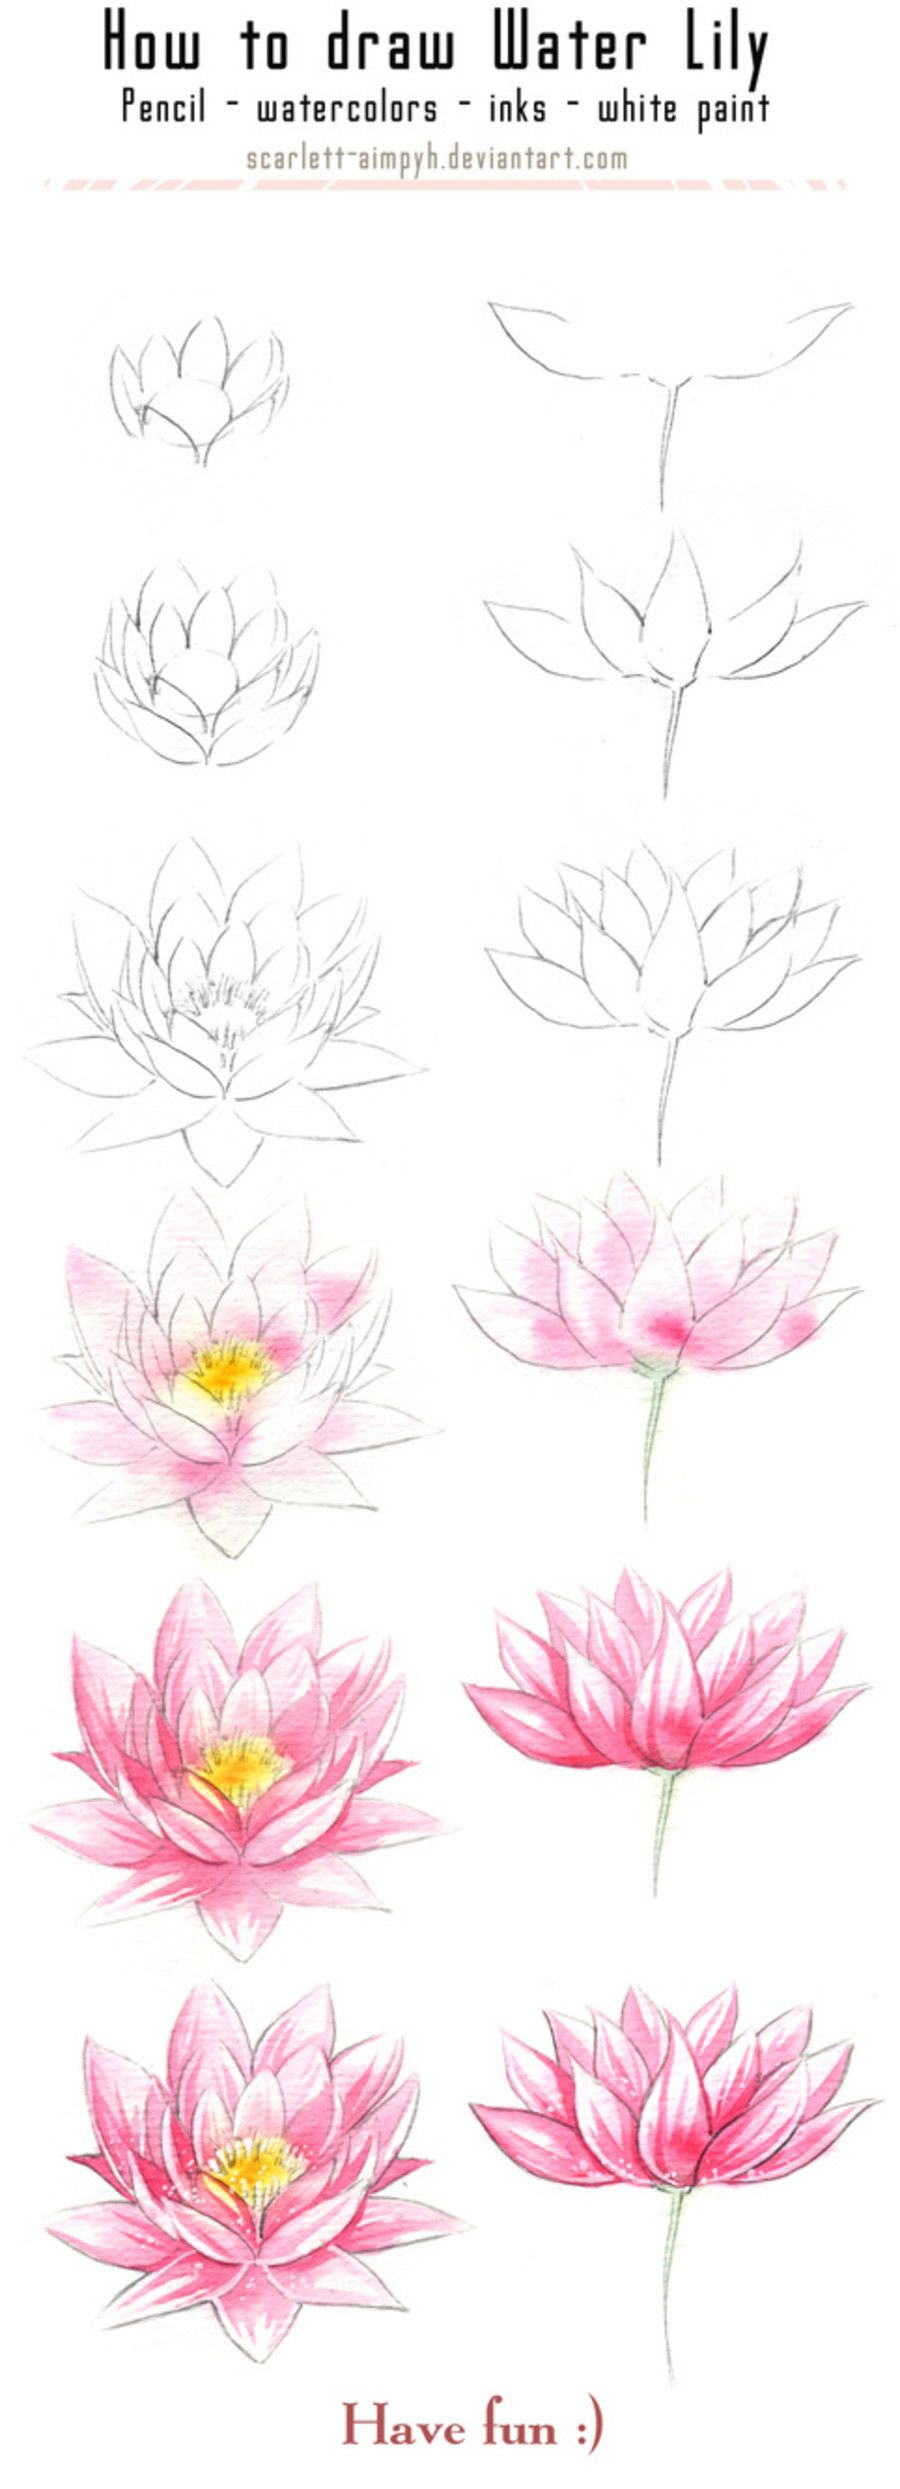 A water lily this makes it look so simple flowers n vines etc a water lily this makes it look so simple lilly flower drawing flower izmirmasajfo